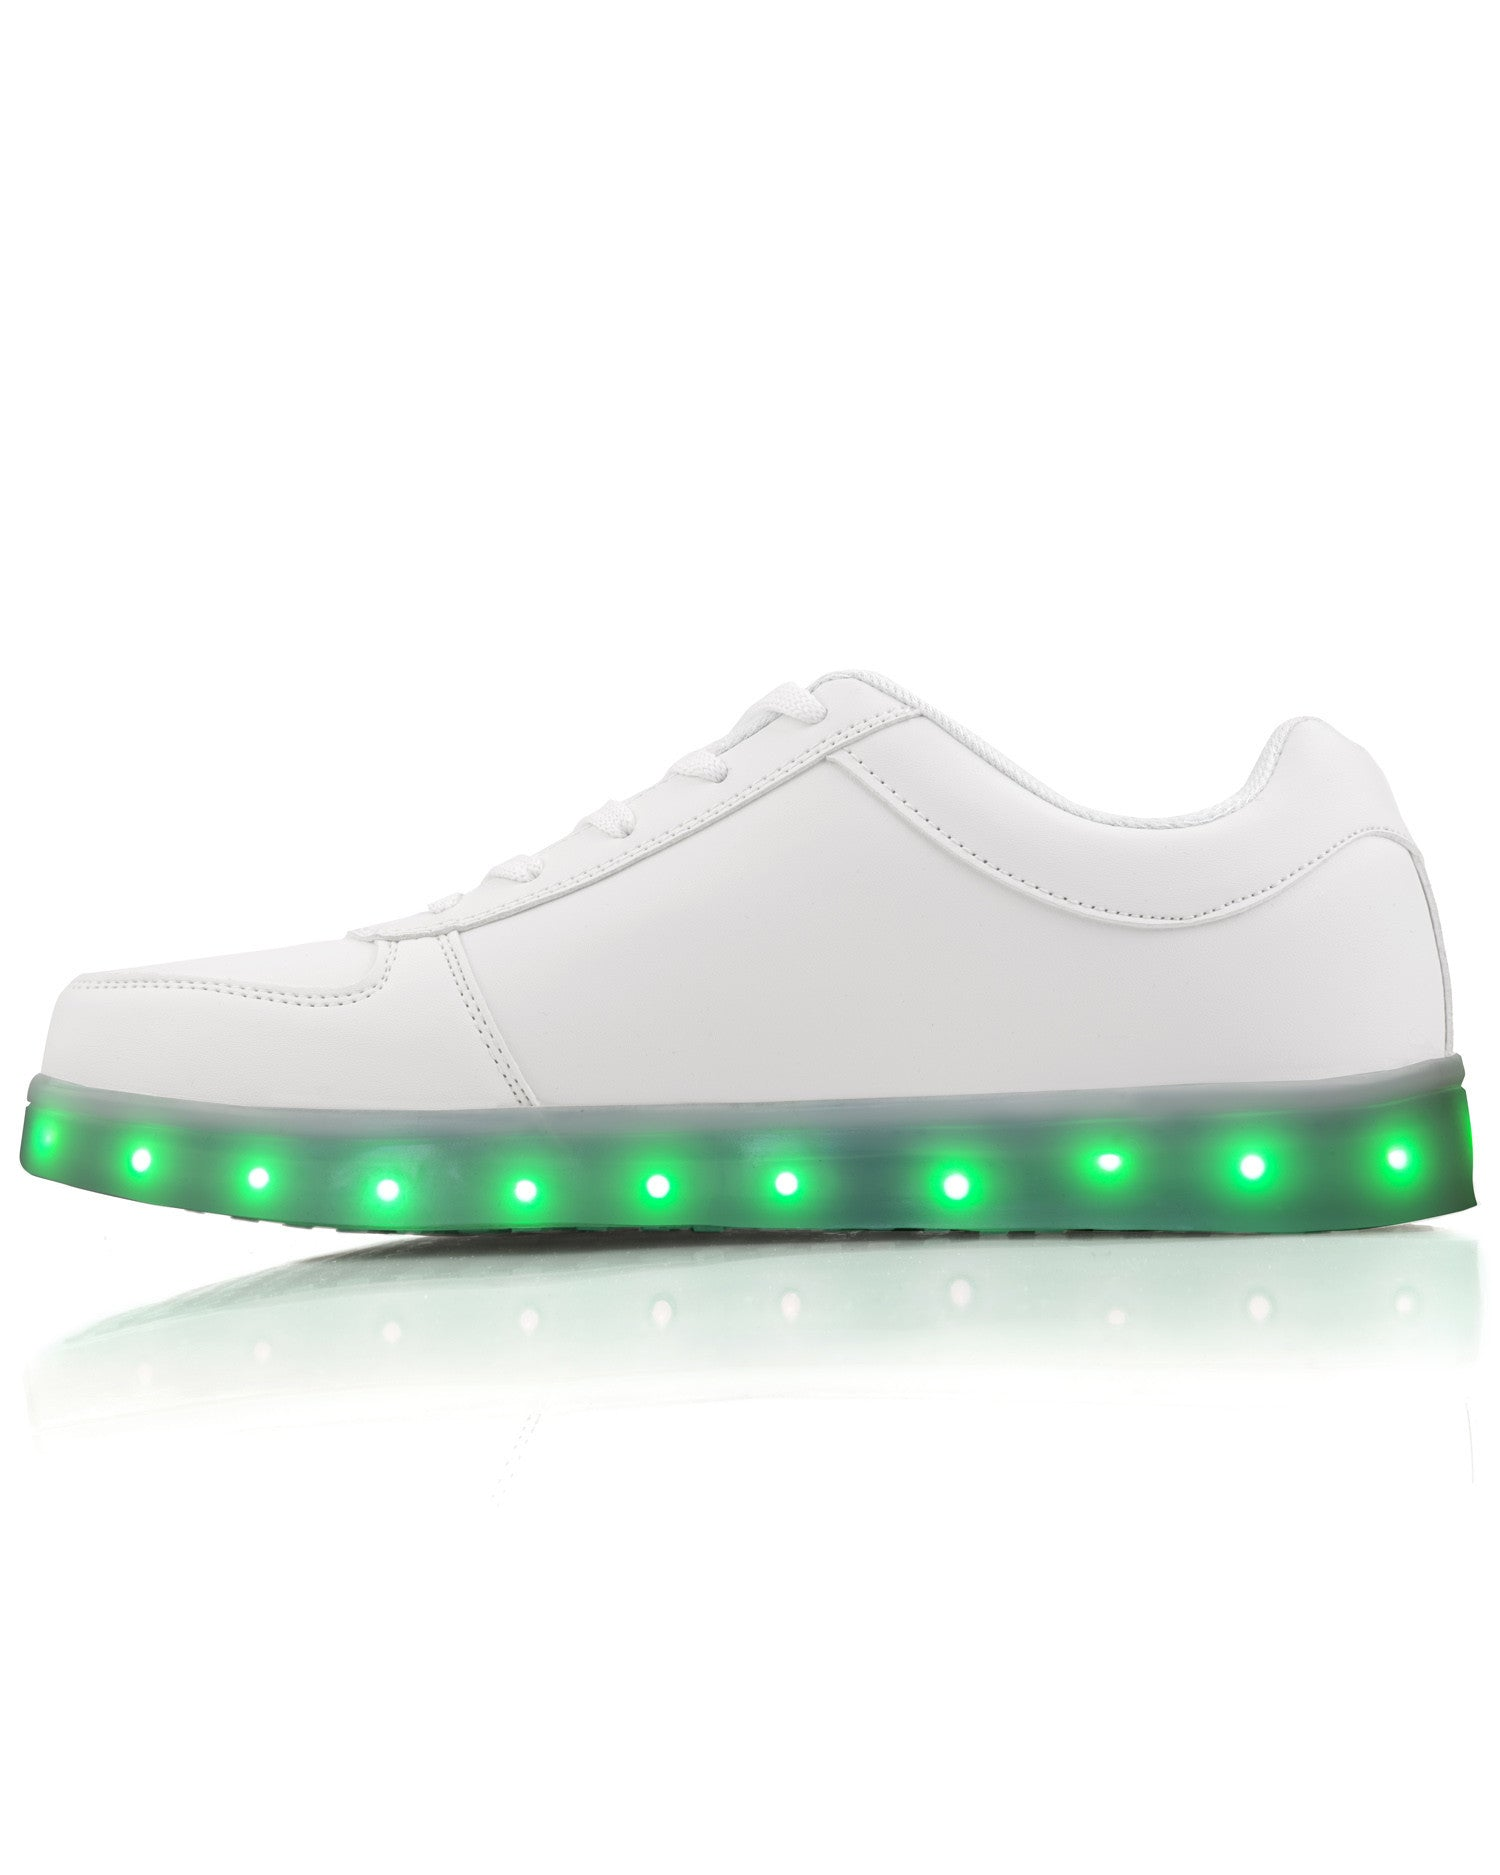 Electric Shoes - The Original - Electric Styles | World's Number 1 Light Up Shoe Store - {product_type}} -  - 6